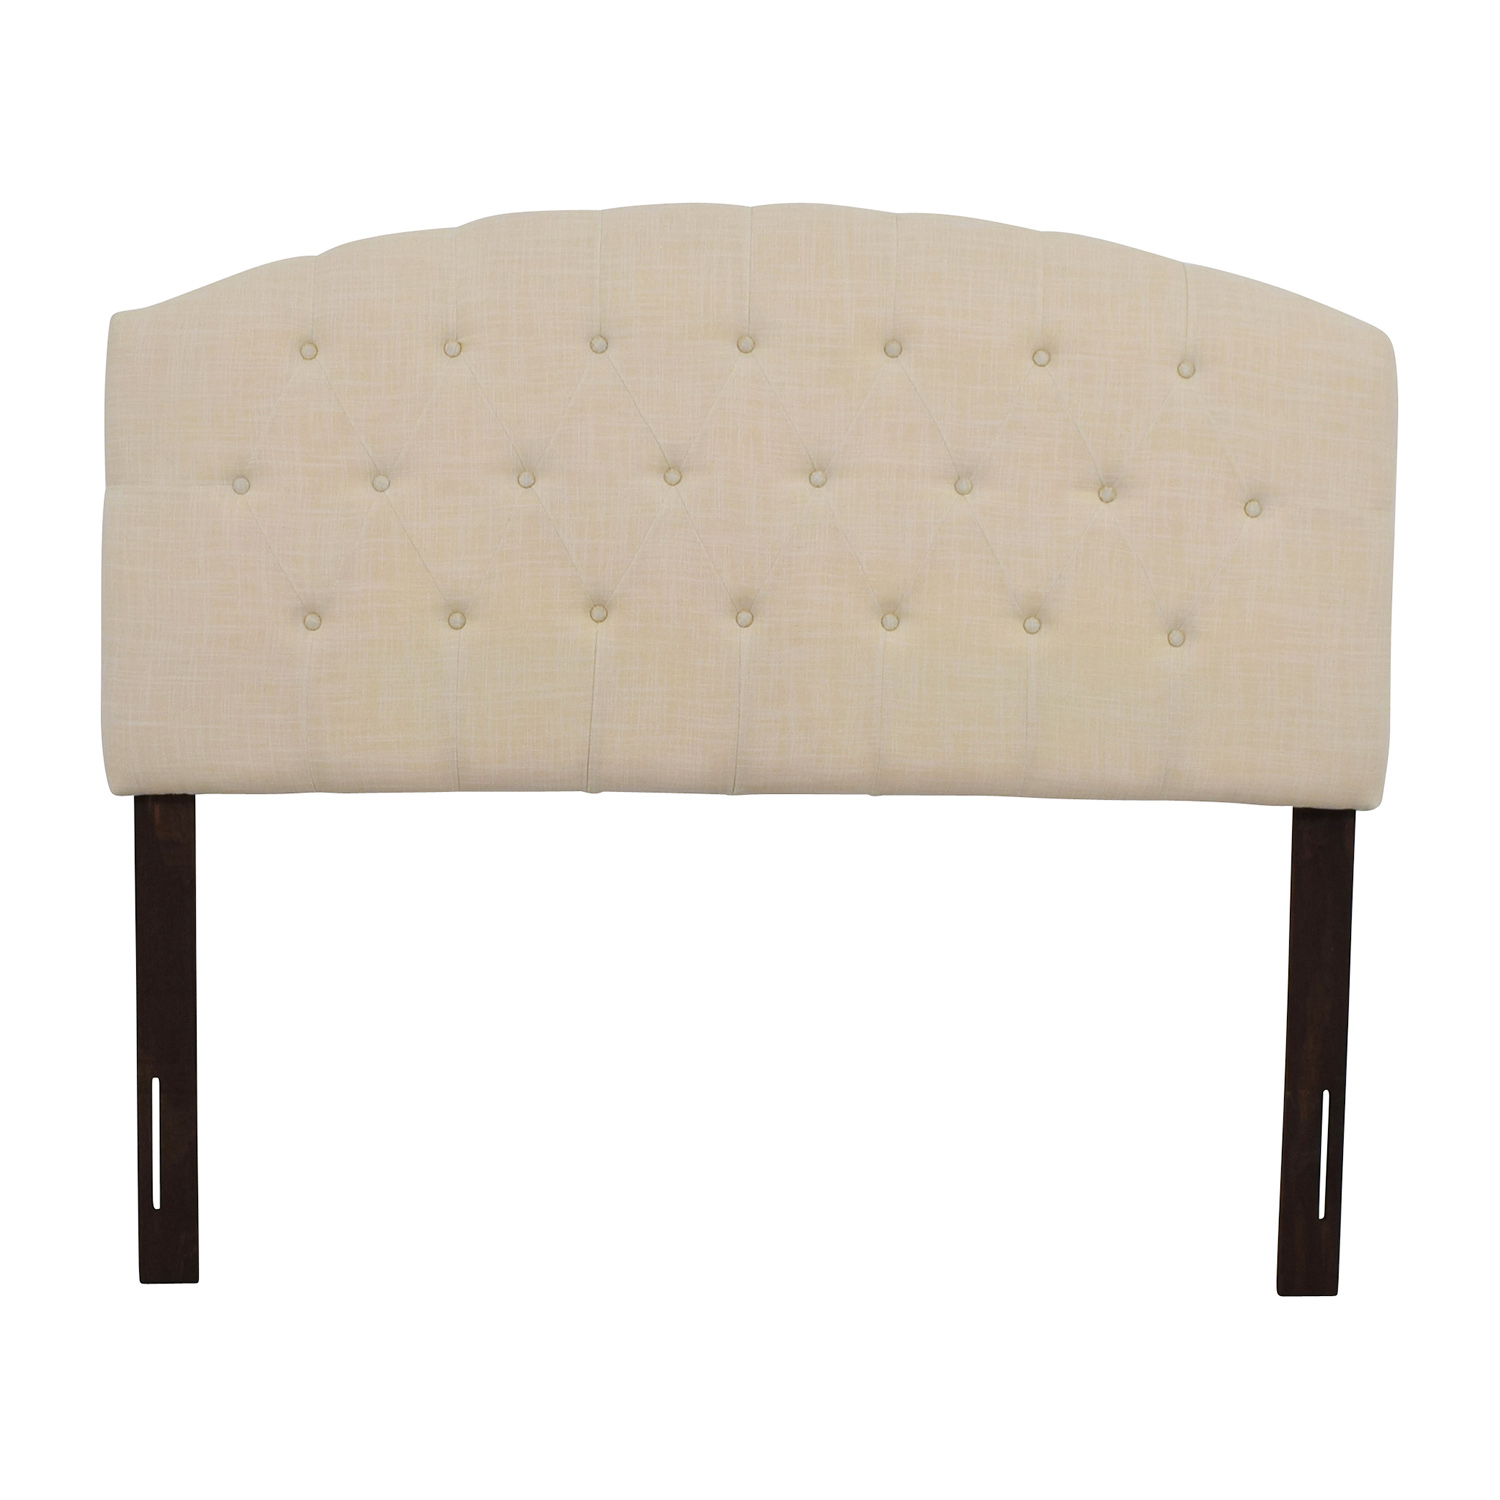 Humble + Haute Humble + Haute Ivory Linen Blend Curved Upholstered Headboard nj